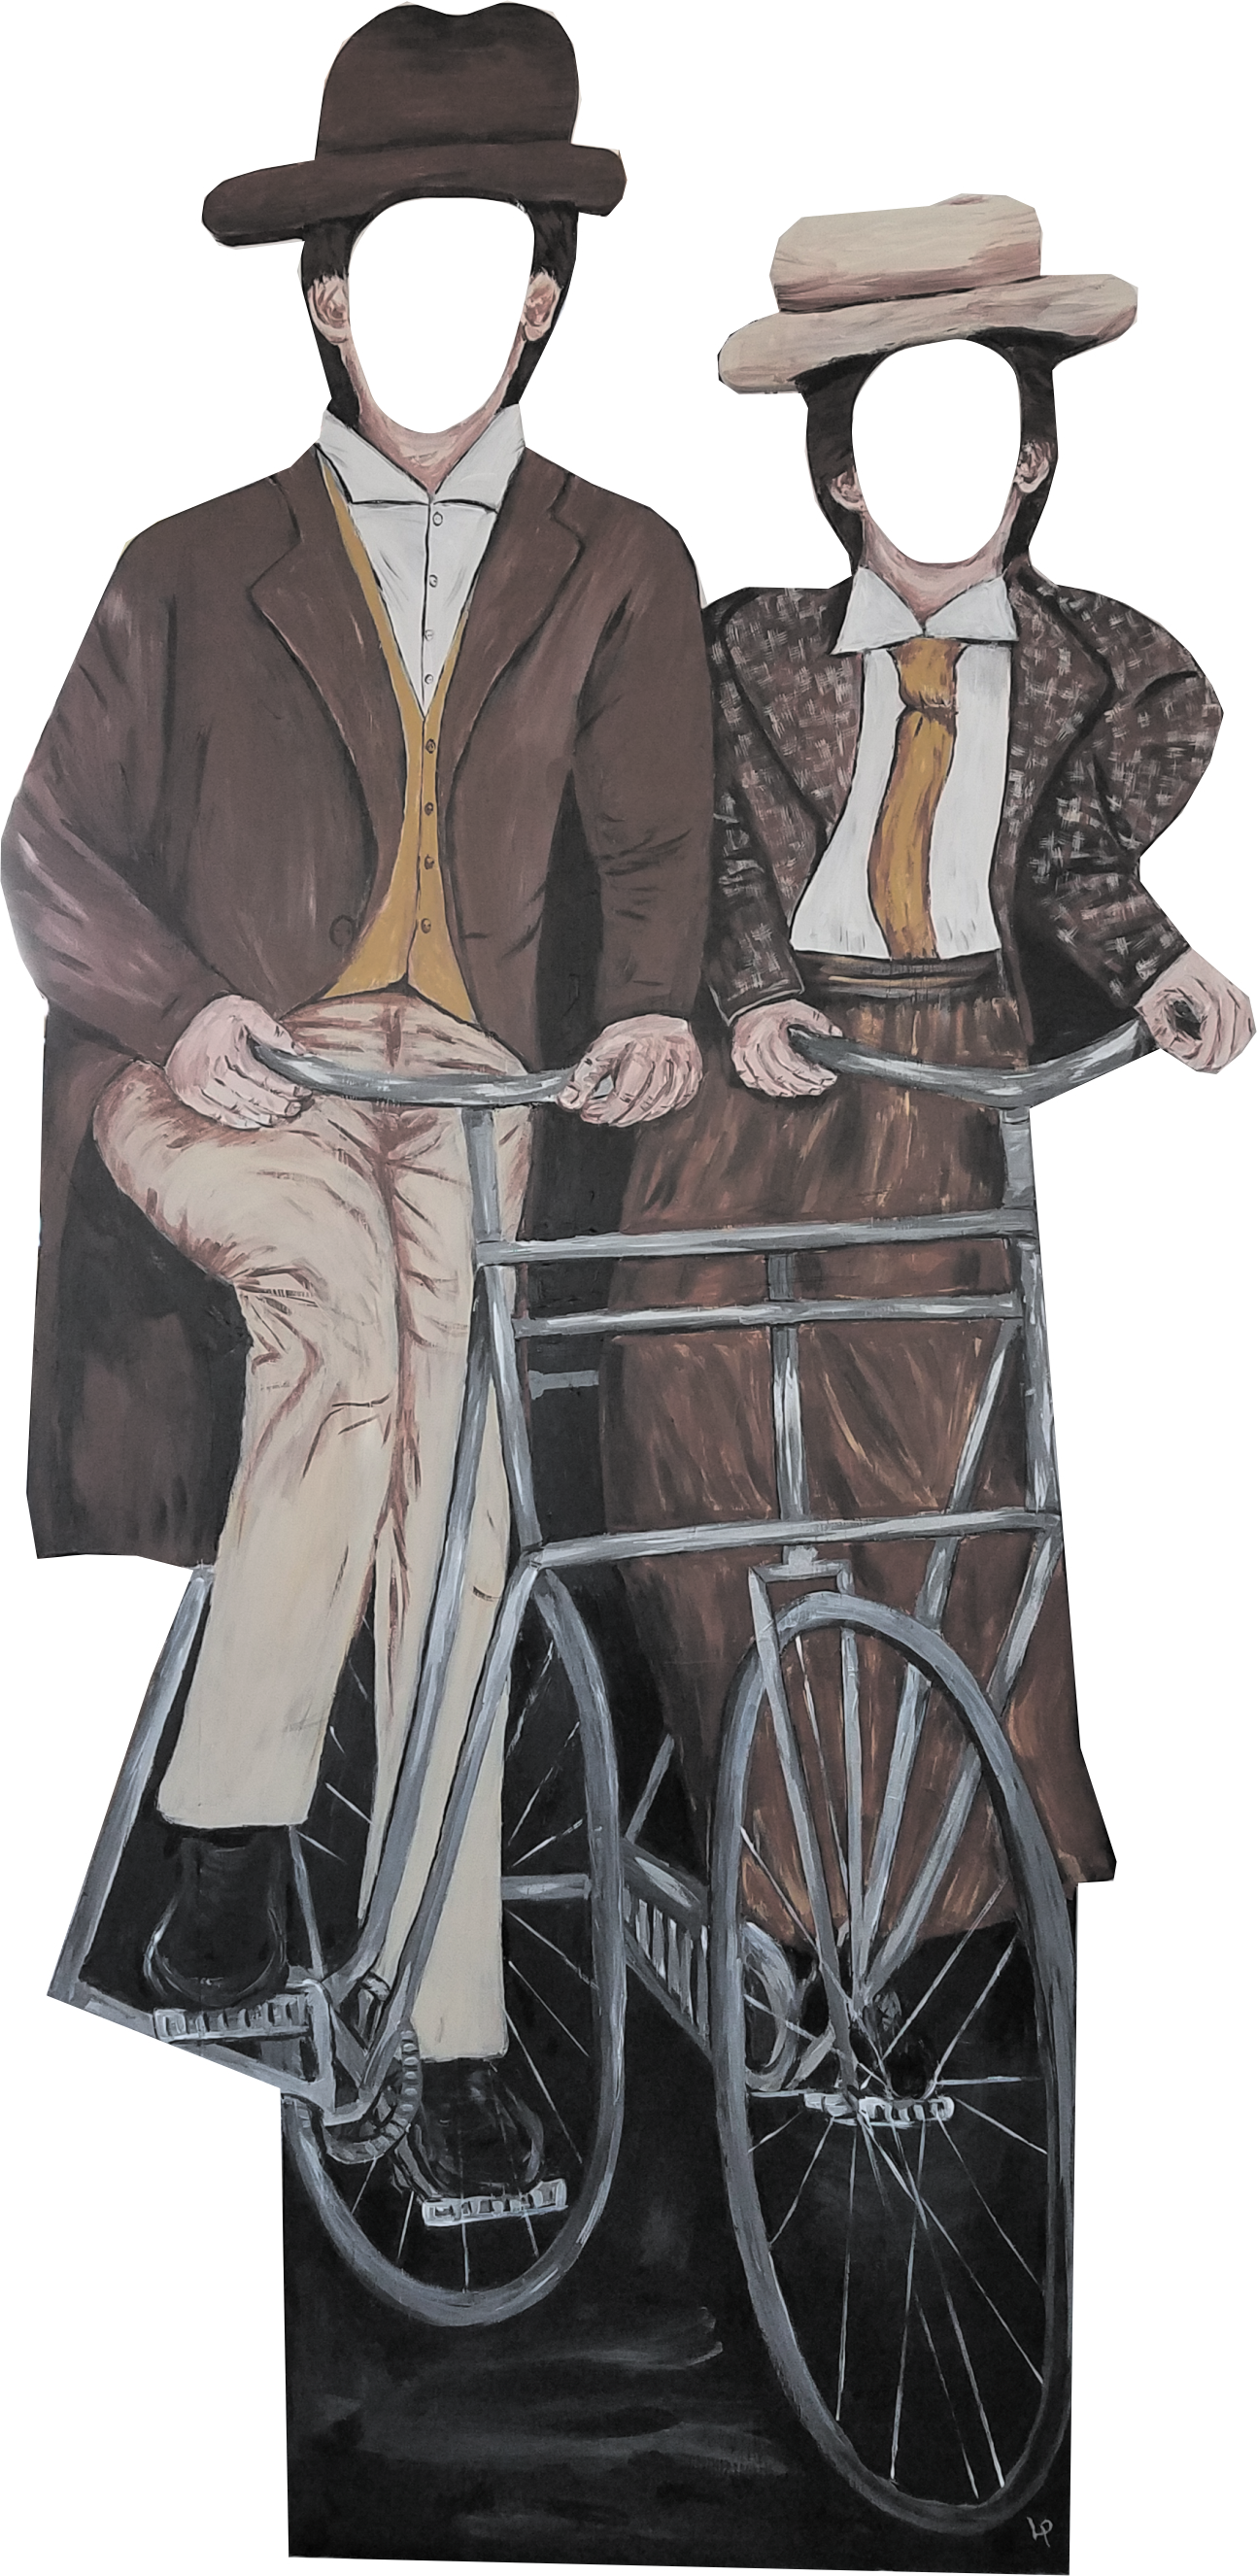 1896 Bicycle built for two